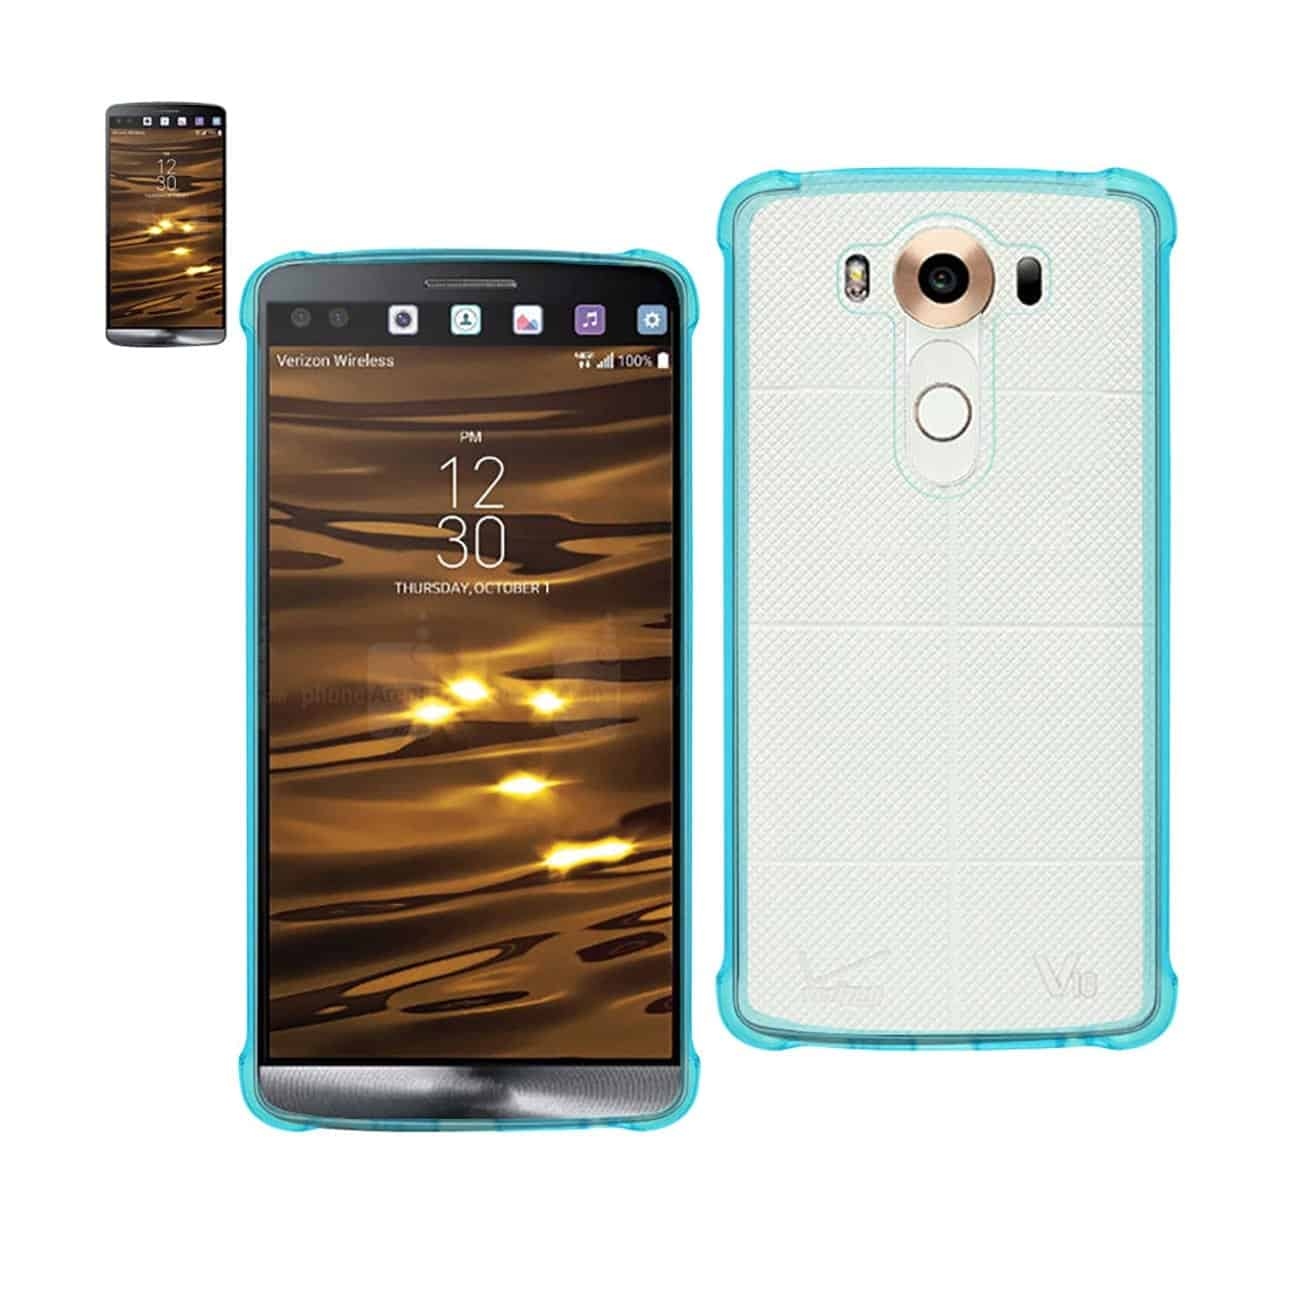 LG V10 MIRROR EFFECT CASE WITH AIR CUSHION PROTECTION IN CLEAR NAVY